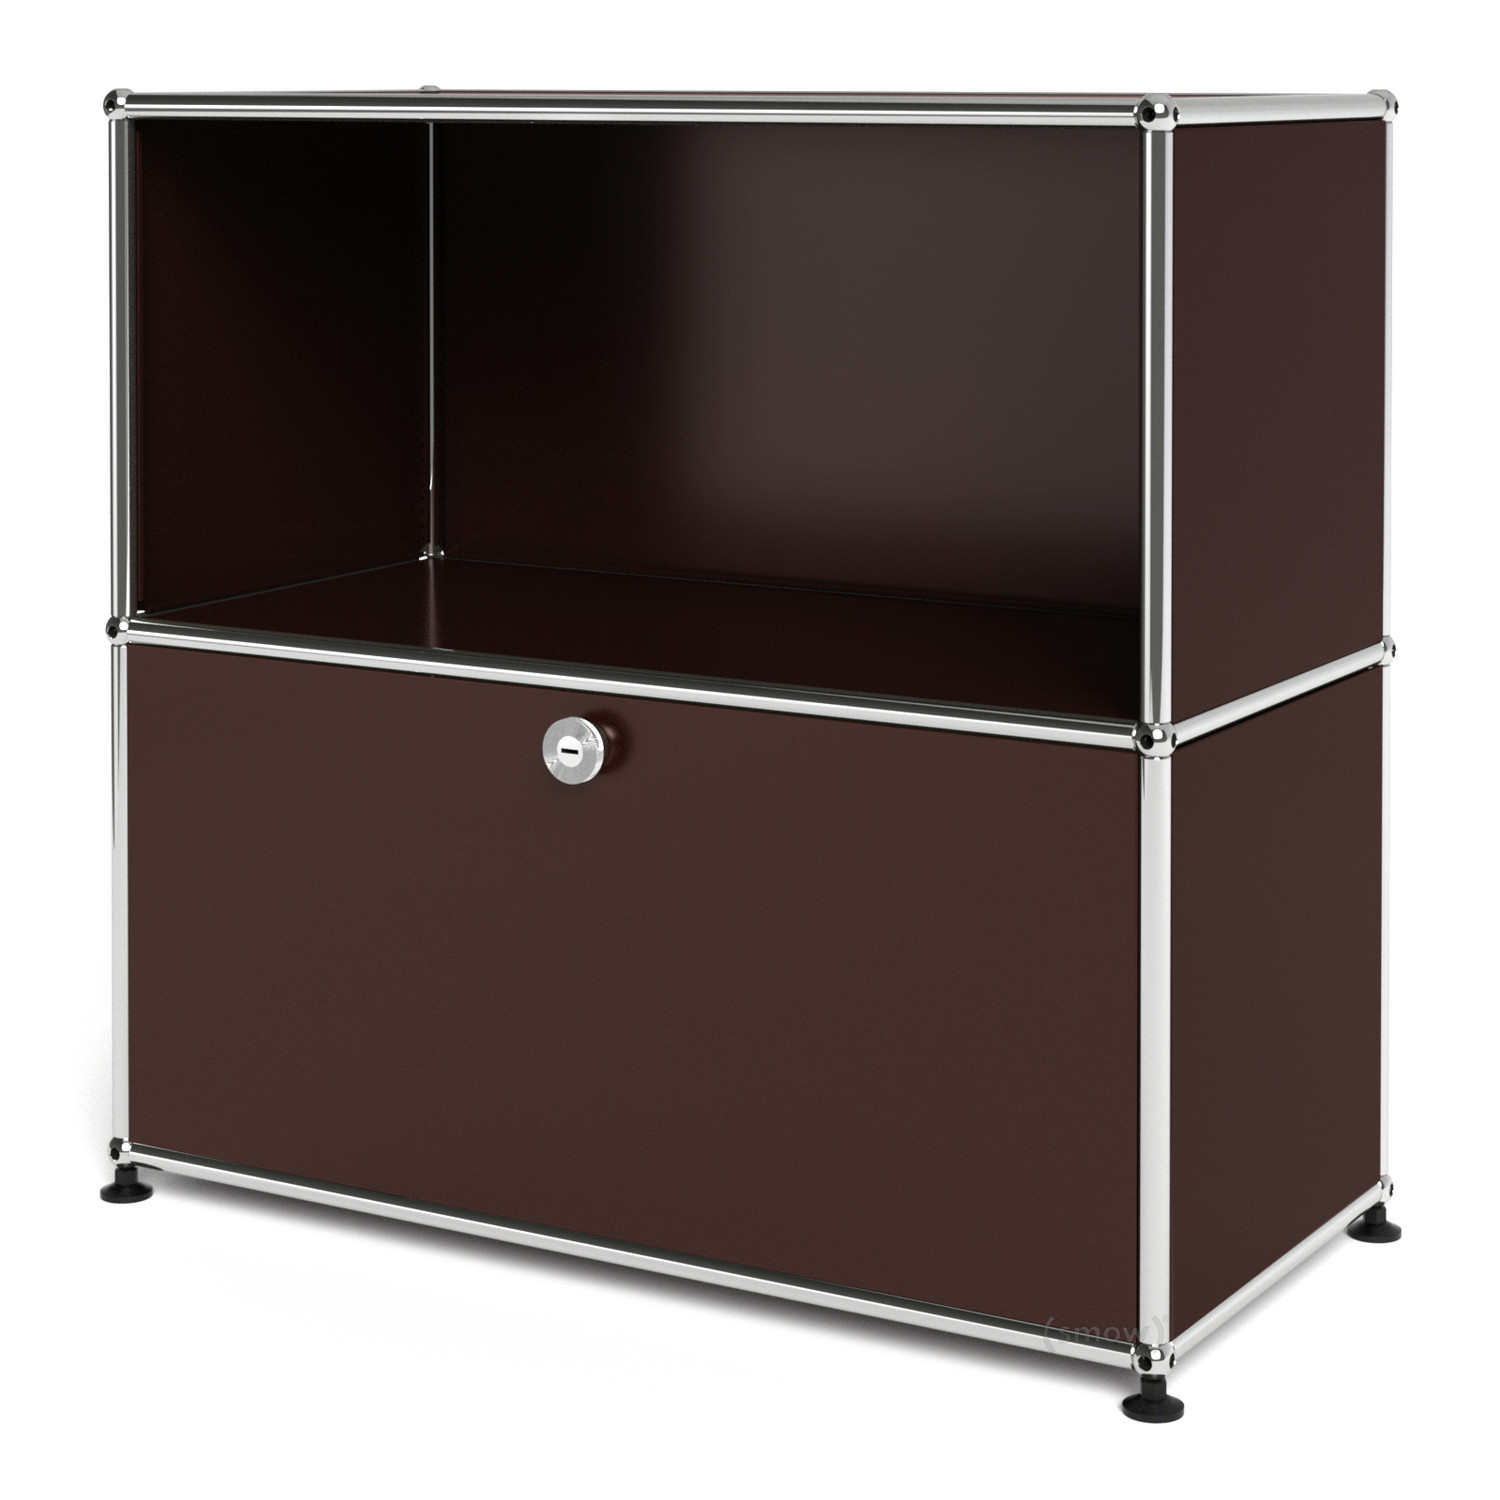 usm haller sideboard m with 1 drop down door usm brown by. Black Bedroom Furniture Sets. Home Design Ideas